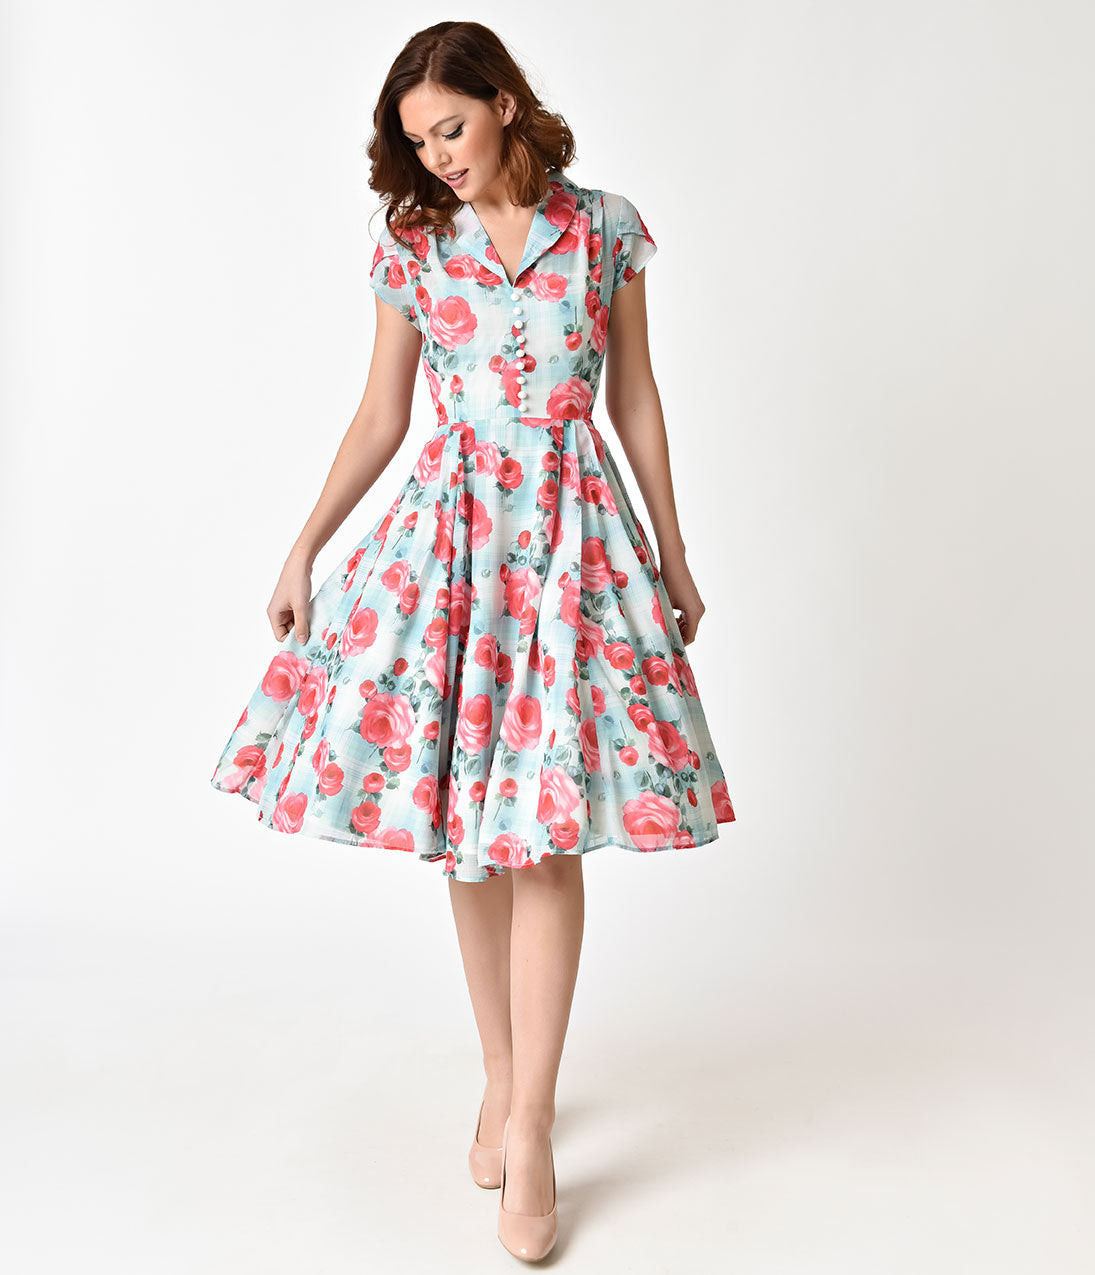 1950s Swing Dresses | 50s Swing Dress Hell Bunny 1950S Mint Floral Cap Sleeve Suzannah Chiffon Swing Dress $92.00 AT vintagedancer.com